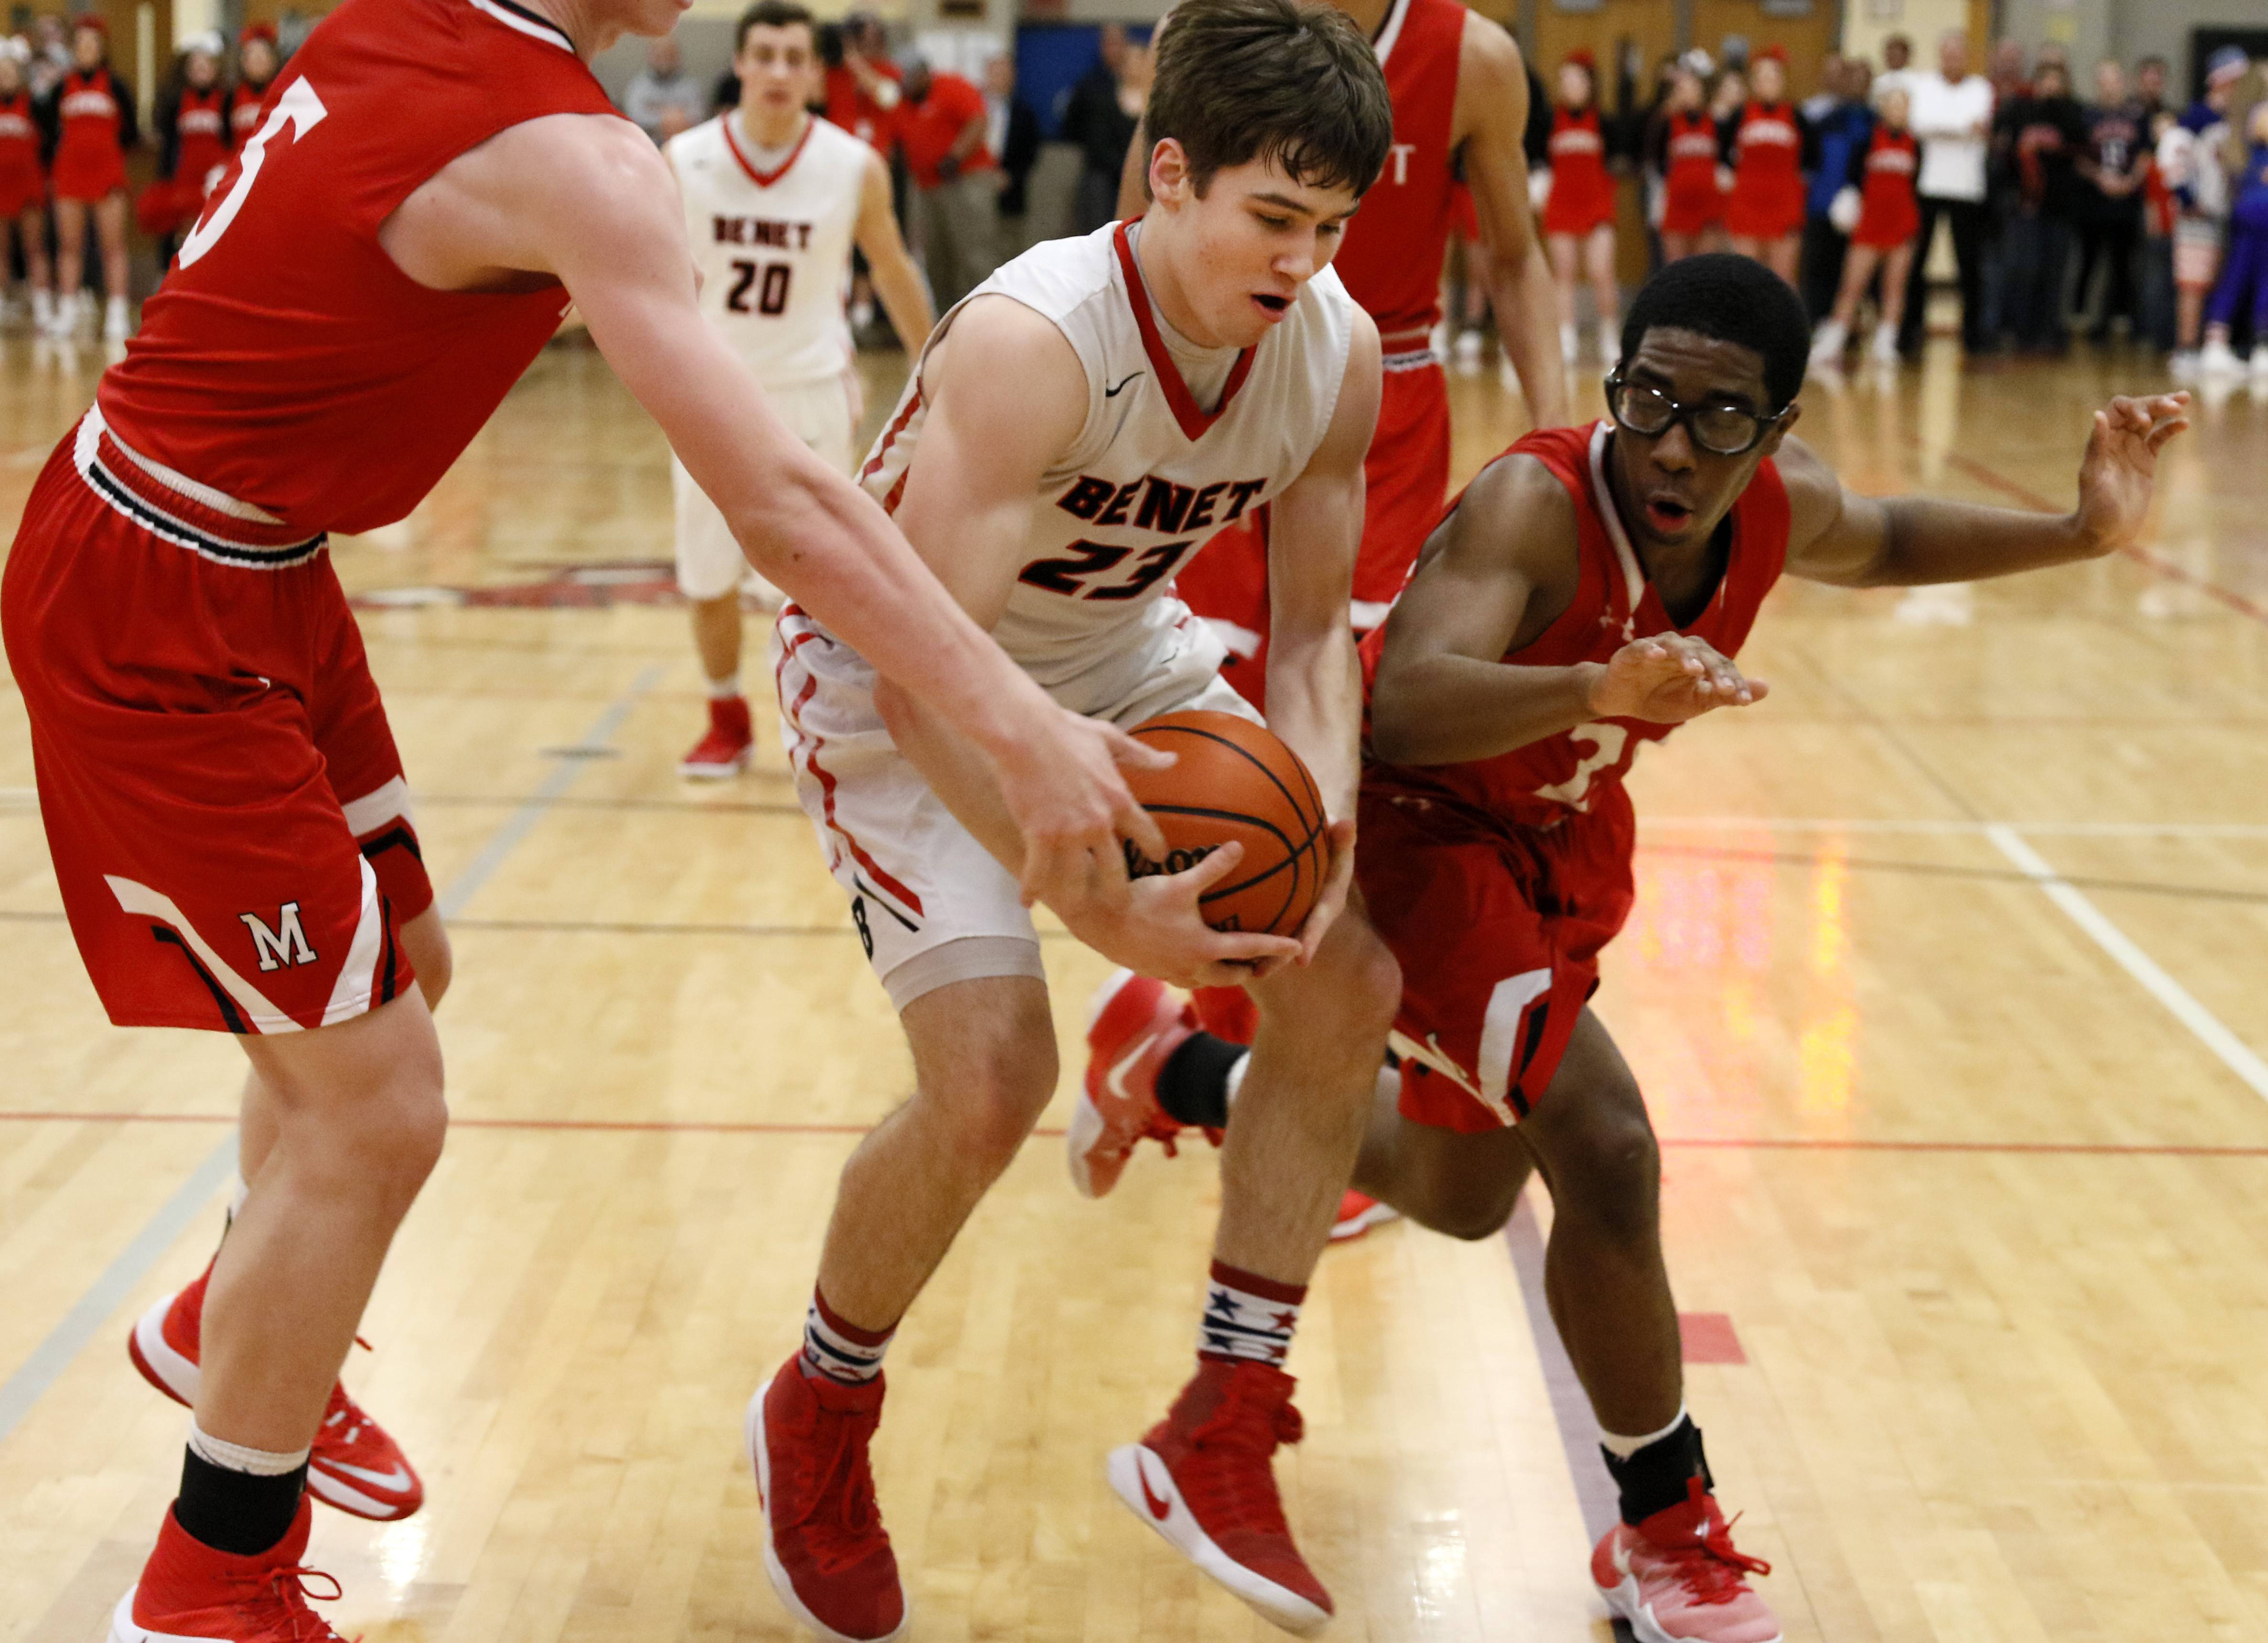 Benet Academy's Liam Lyman, center, retrieves a loose ball against Marist defenders during boys basketball action in Lisle.